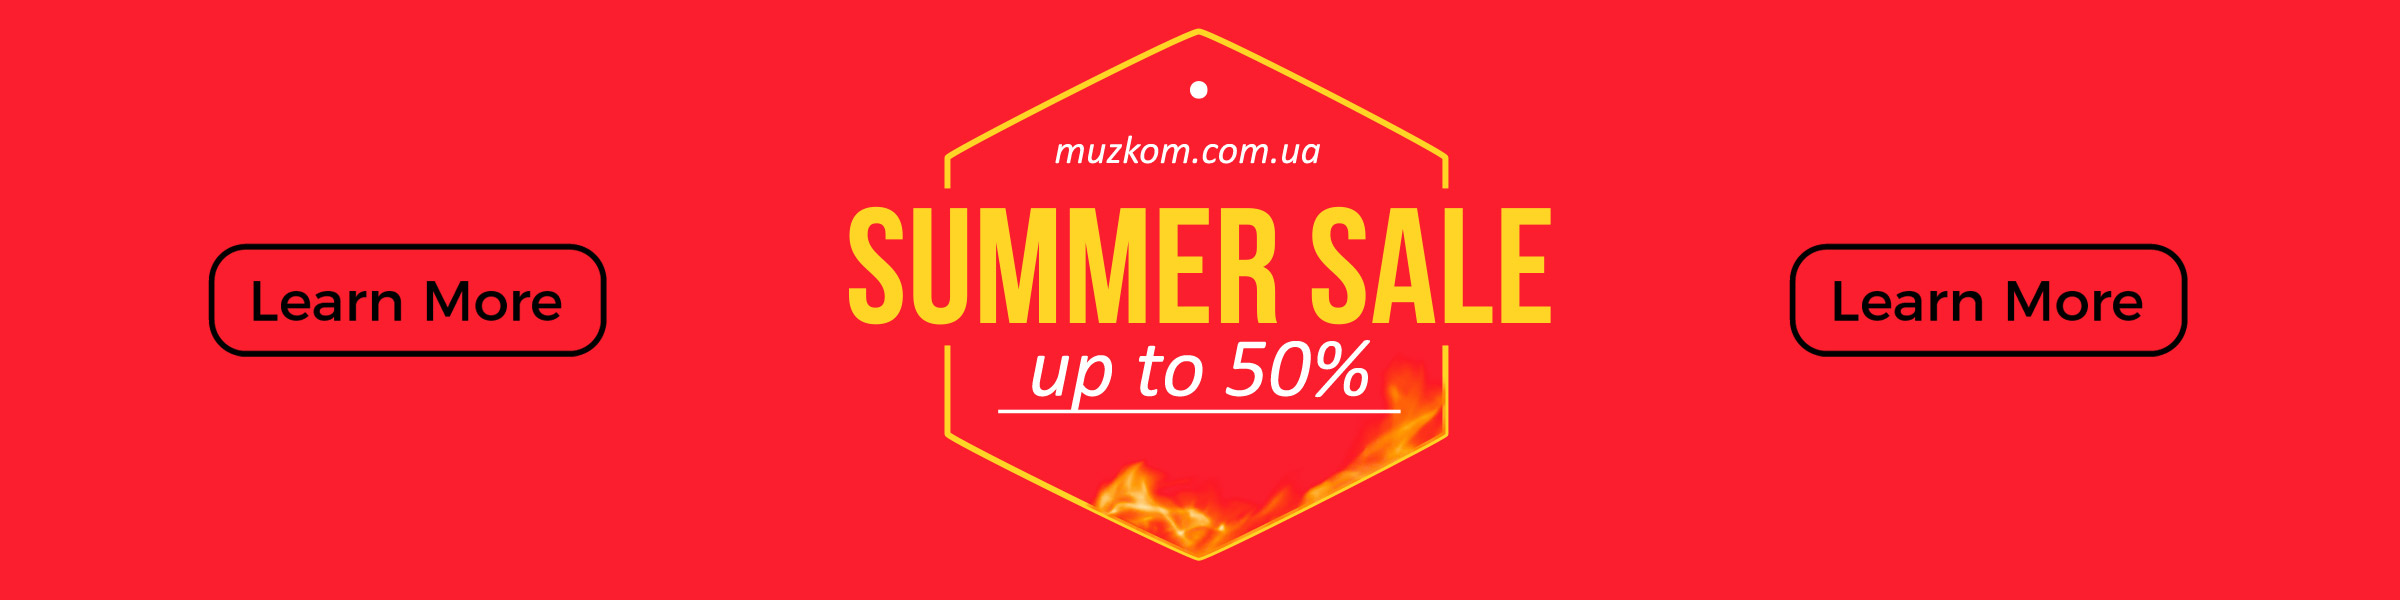 Summer-sale-pt2-ban-ft